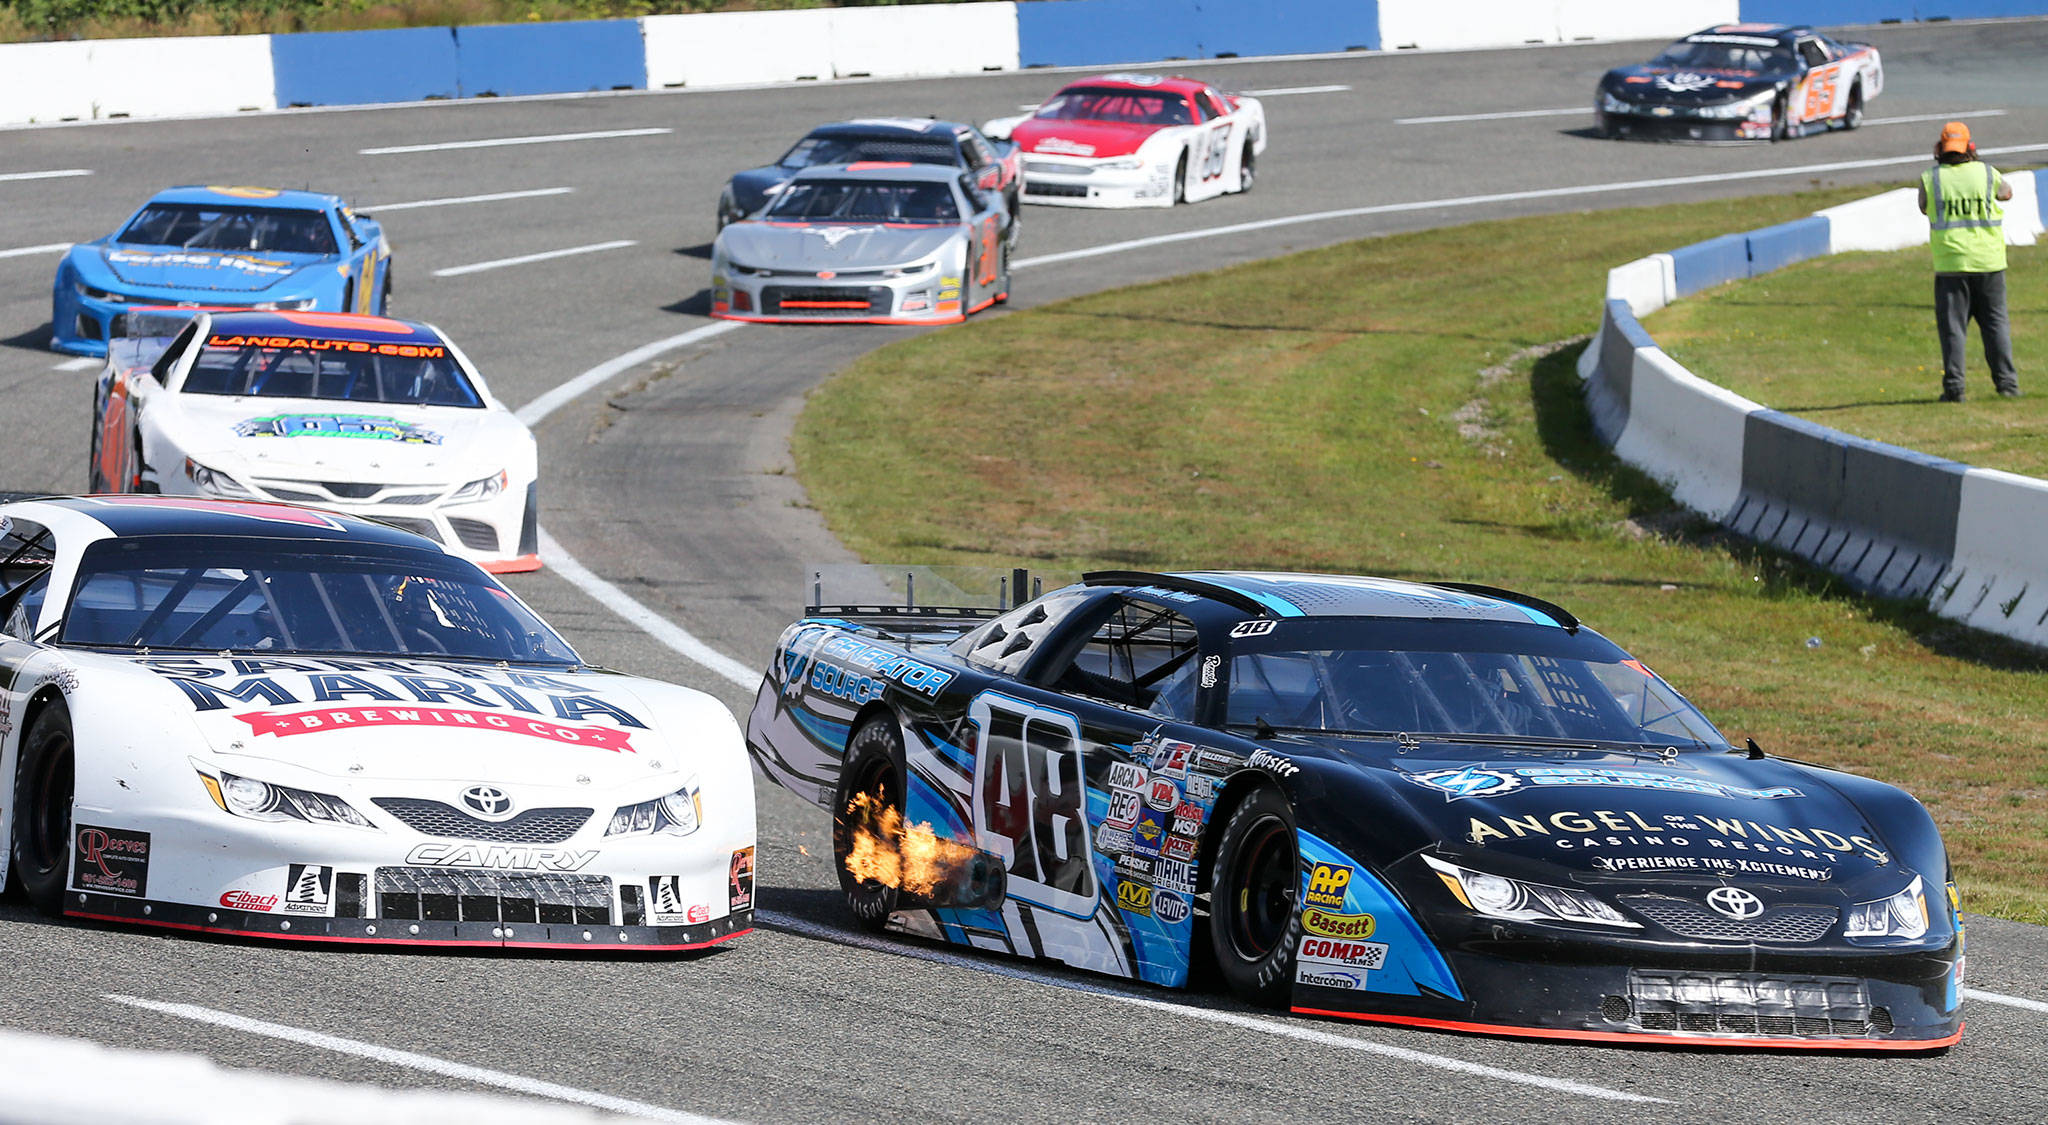 Preston Peltier, car 48, leads the pack in turn four Sunday afternoon during annual the Summer Showdown at the Evergreen Speedway in Monroe on June 30, 2019. (Kevin Clark / The Herald)